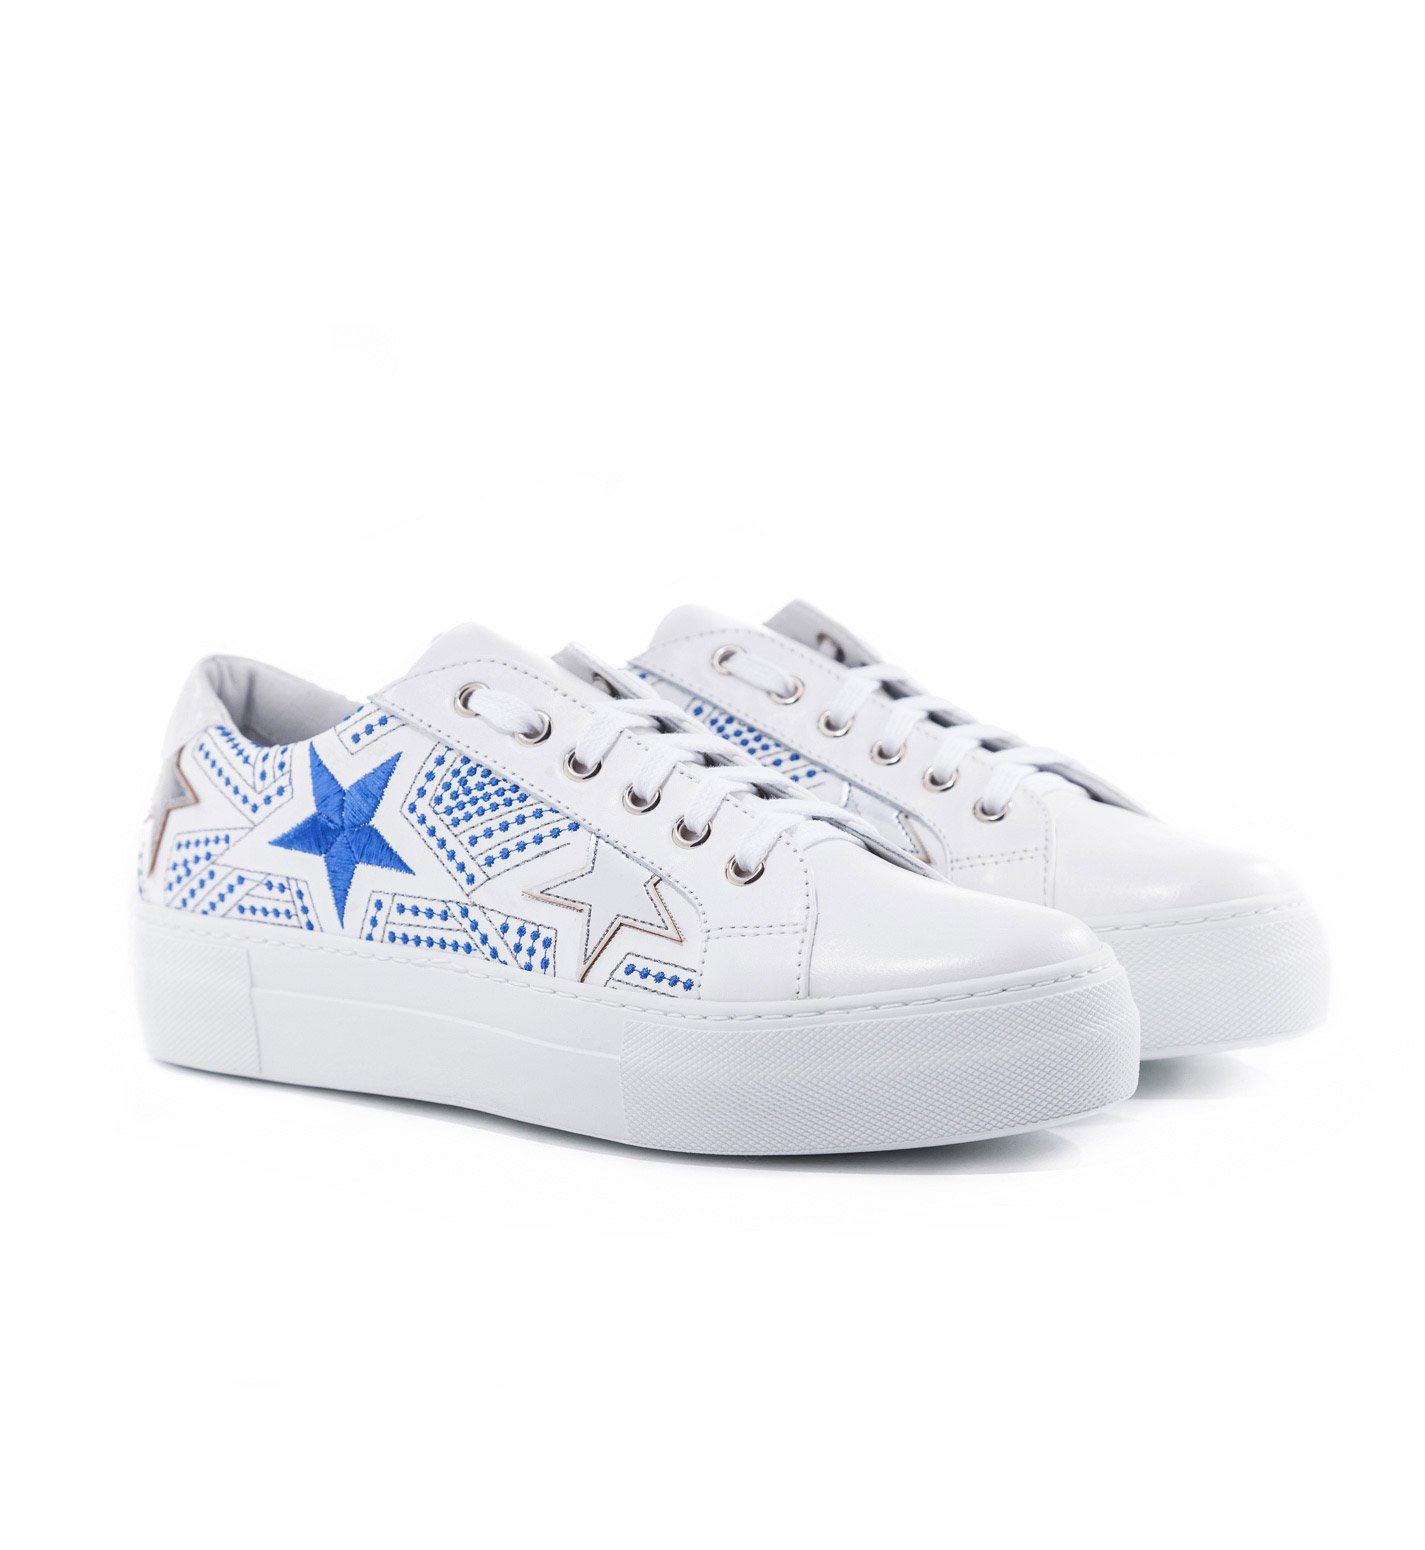 Silver Stars Leather Sneakers